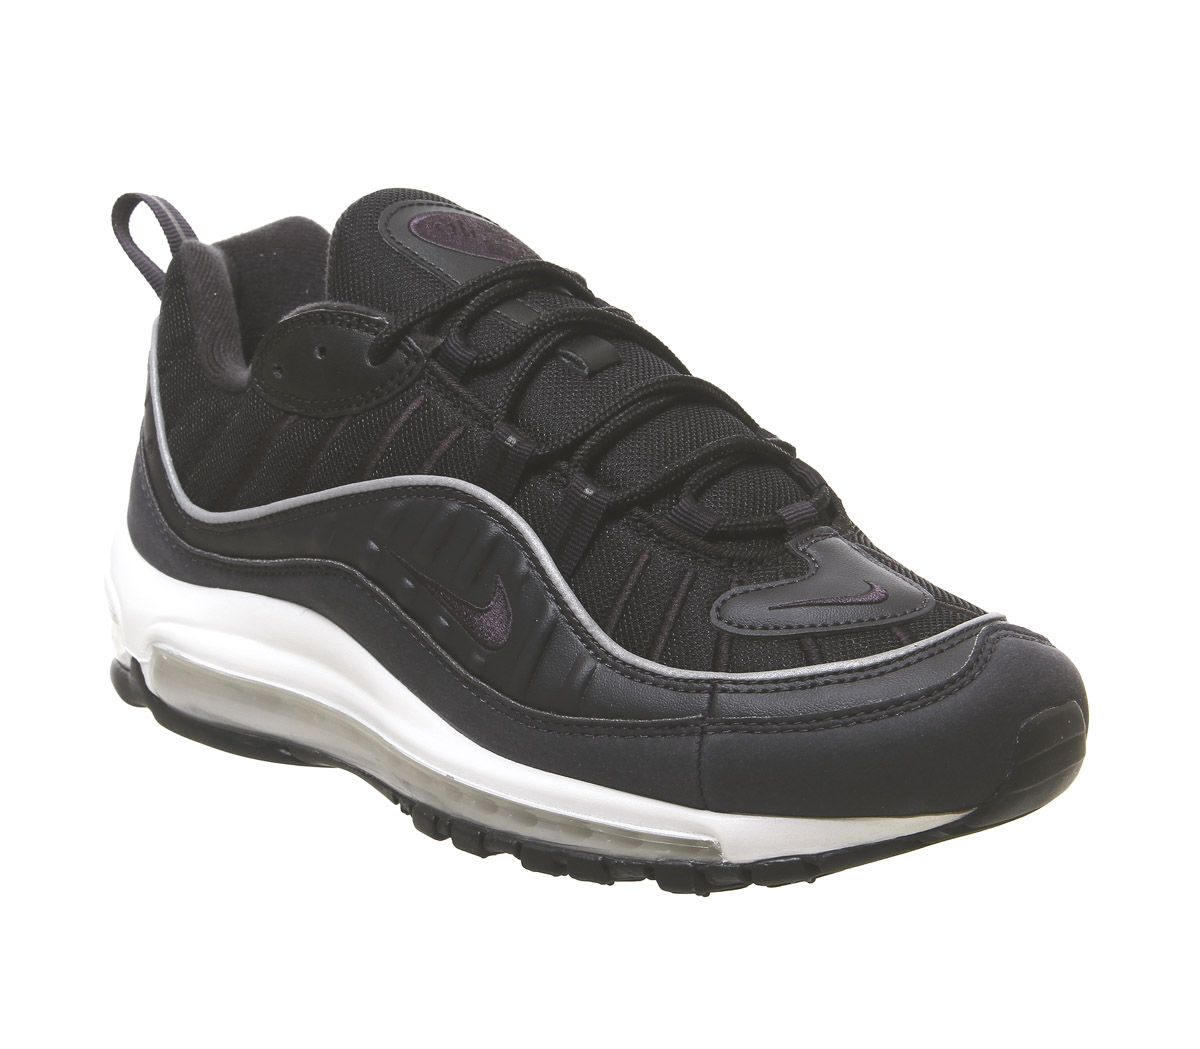 best service 676af 9d3e2 Air Max 98 Trainers